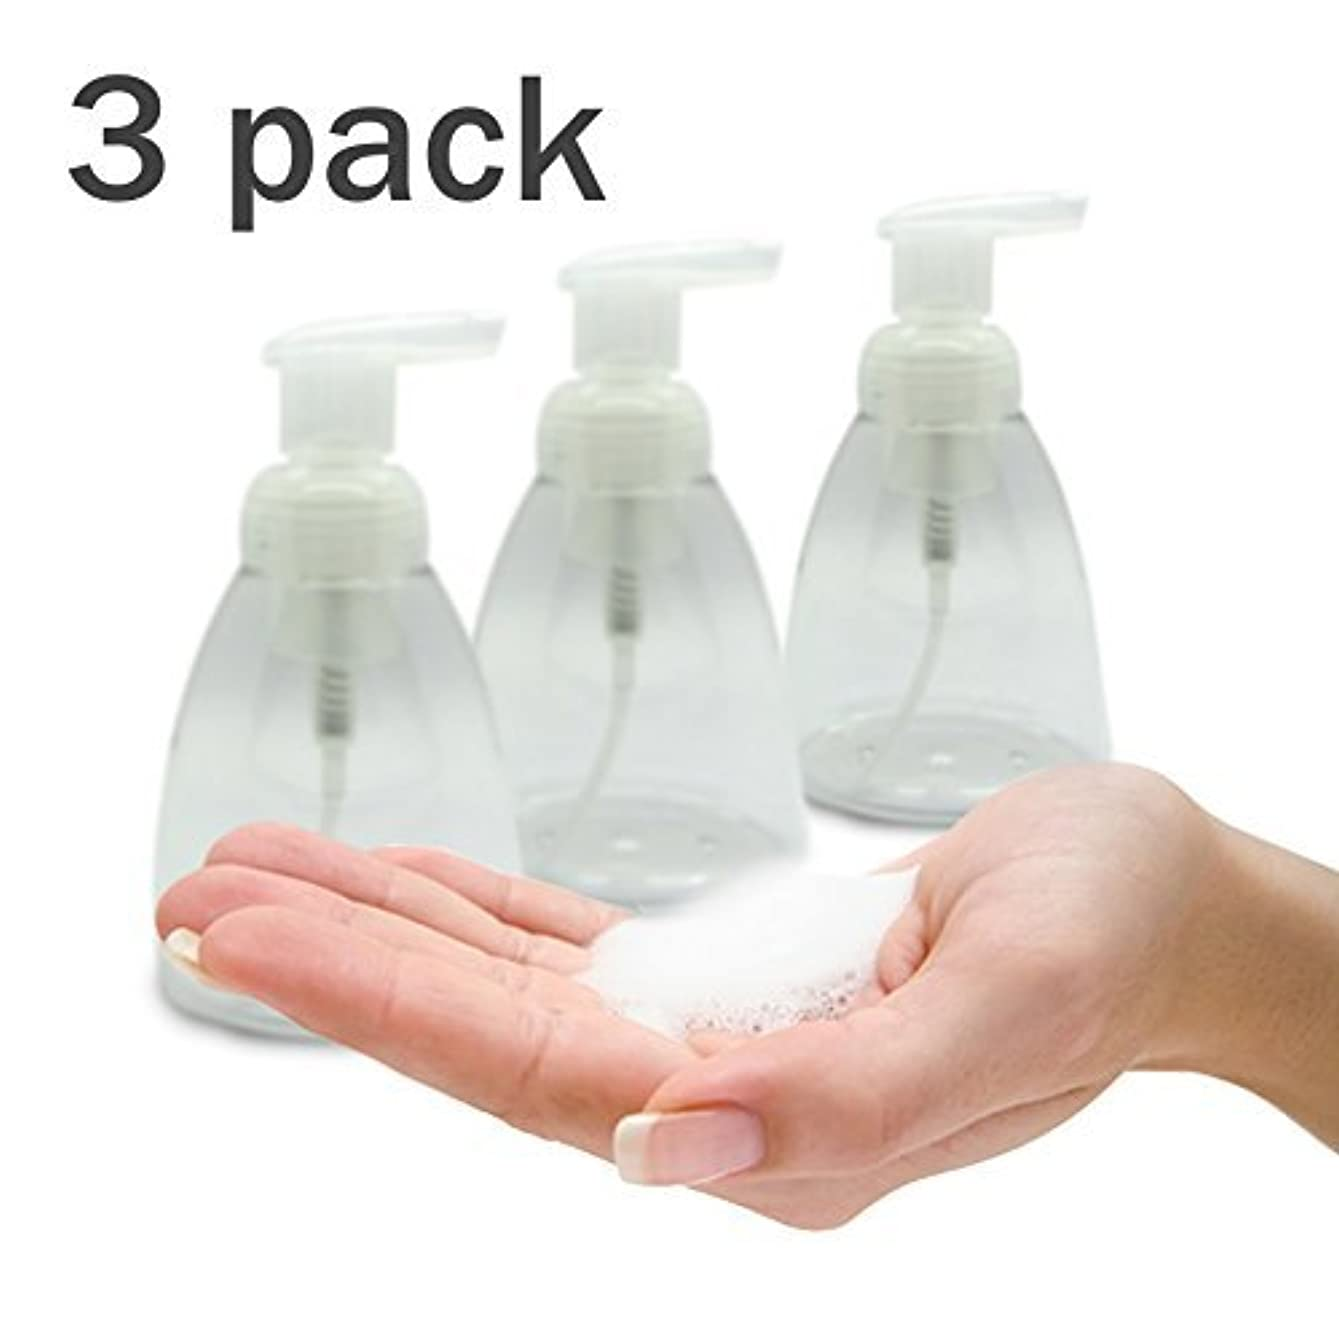 すばらしいです息切れたらいFoaming Soap Dispenser Set of 3 pack 300ml (10 oz) Empty Bottles Hand Soap Liquid Containers. Save Money! Less...